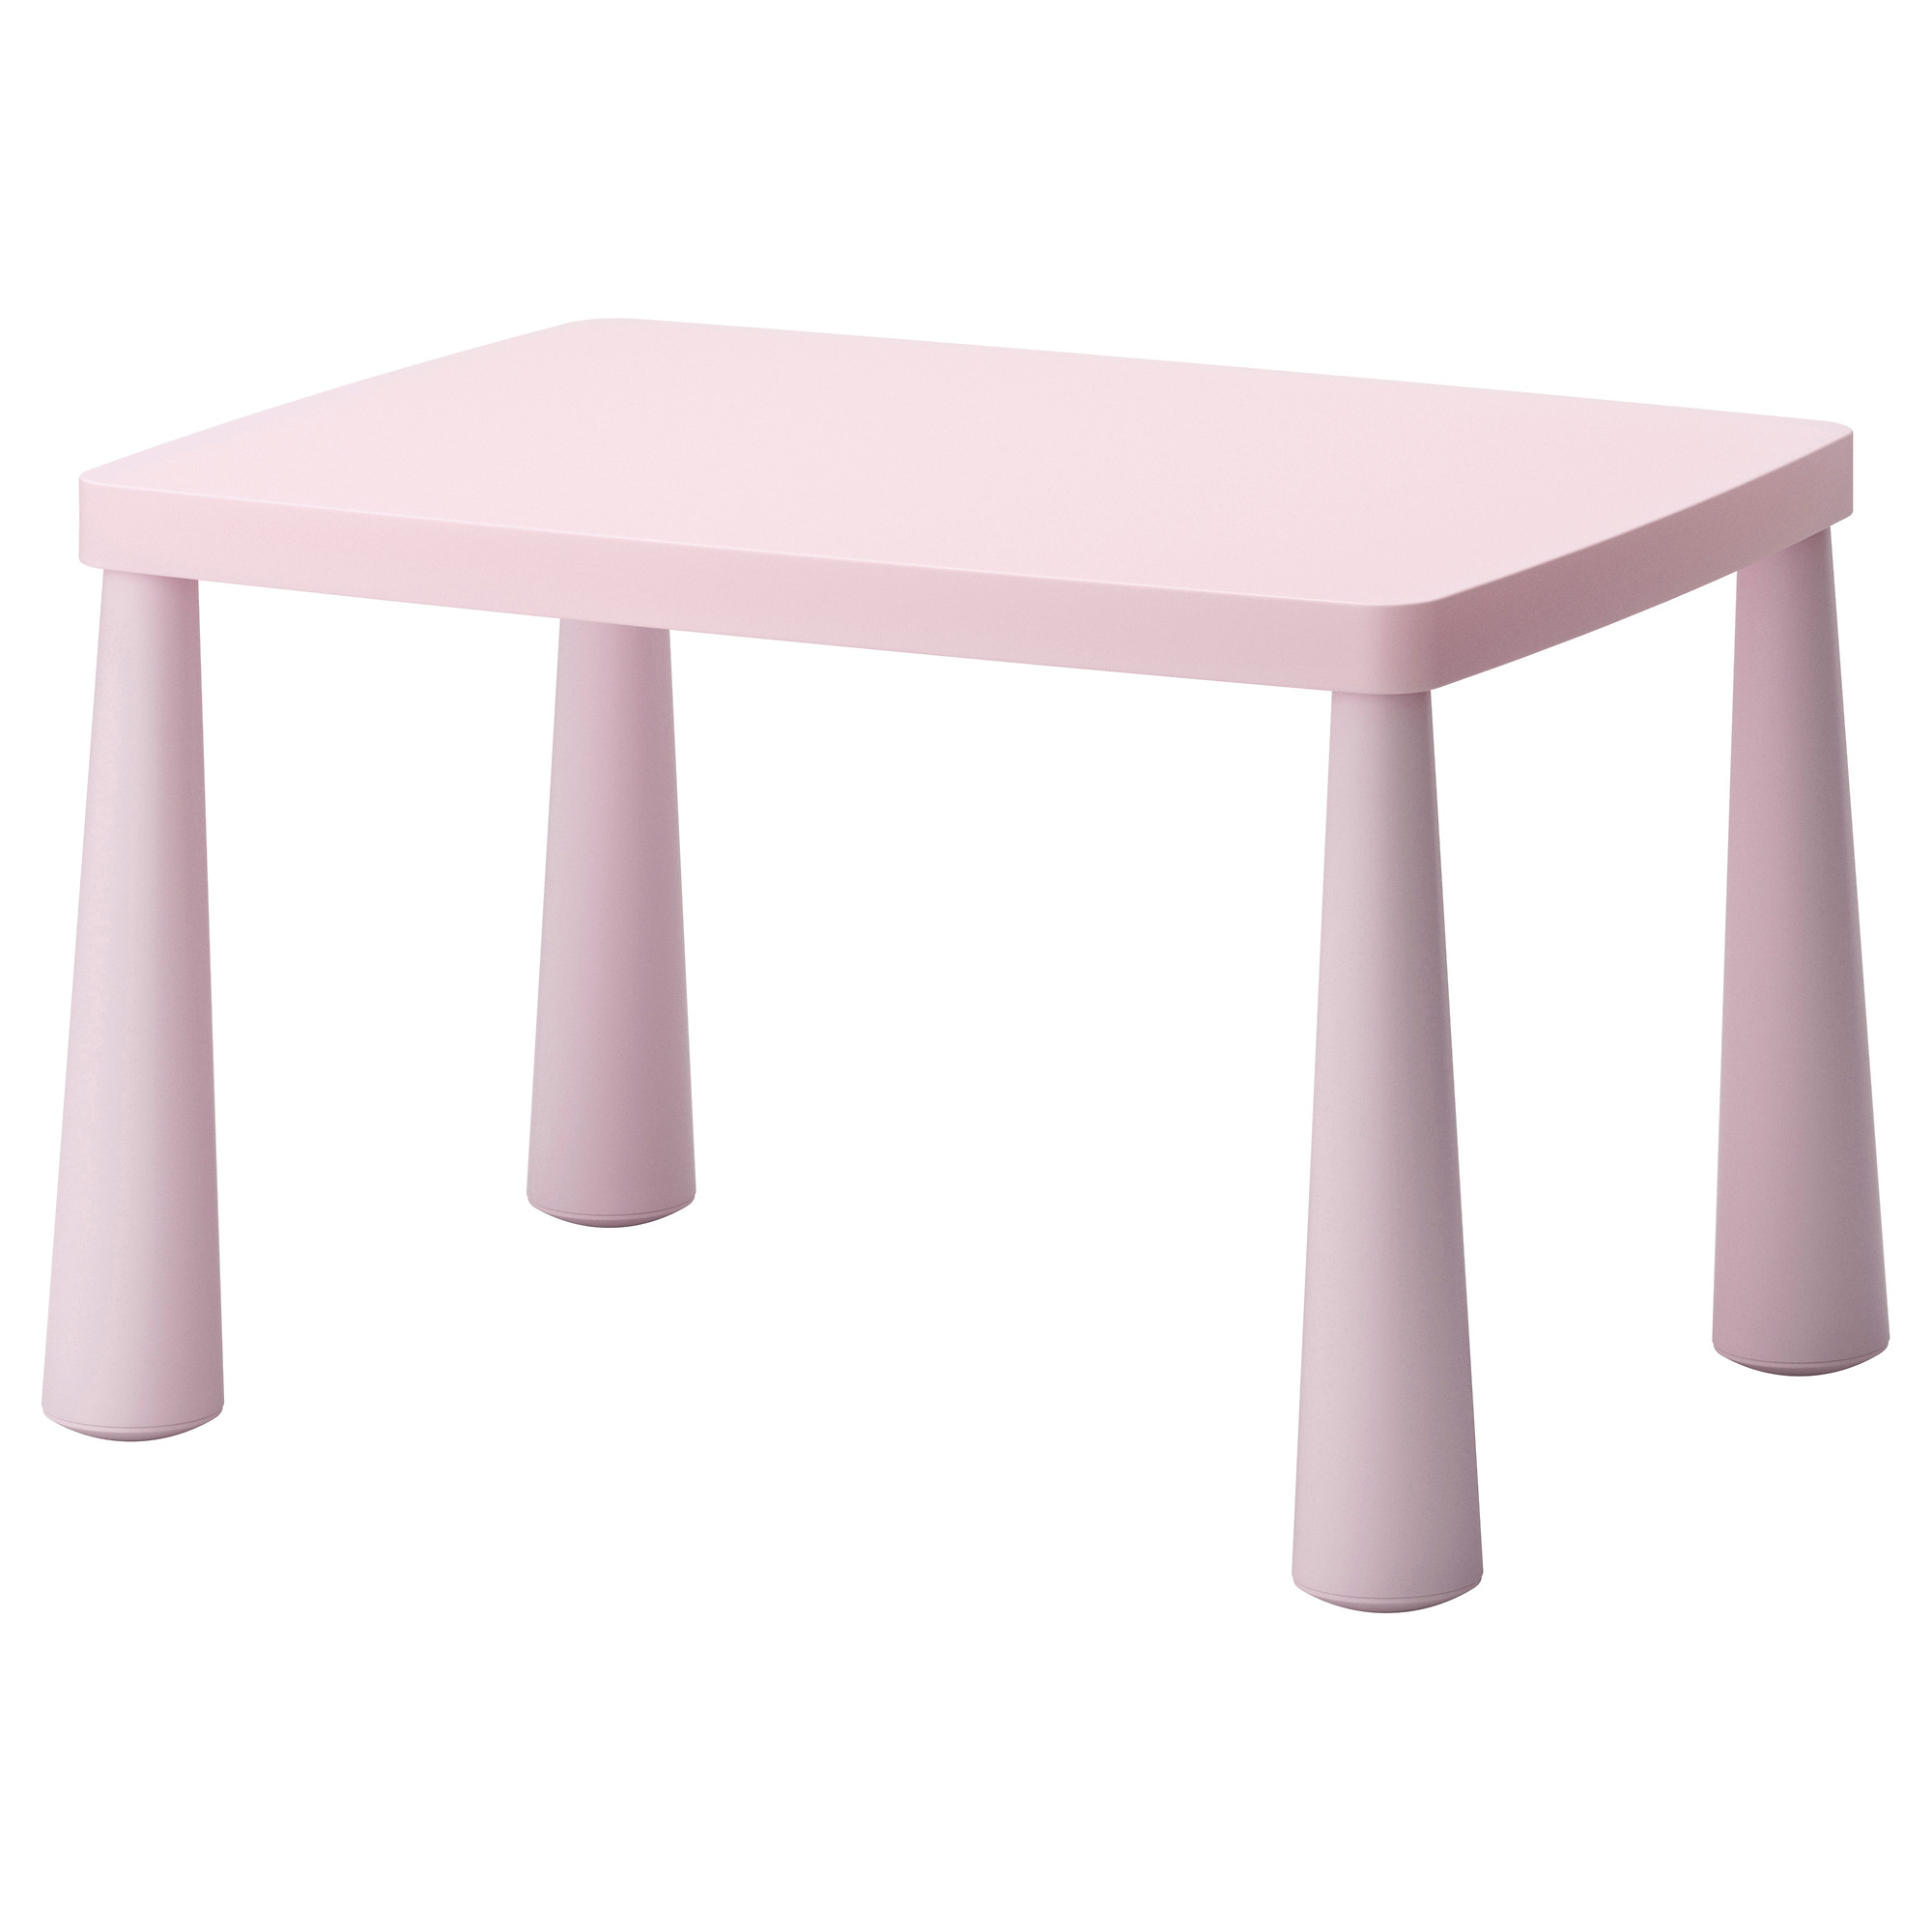 Table bébé ikea